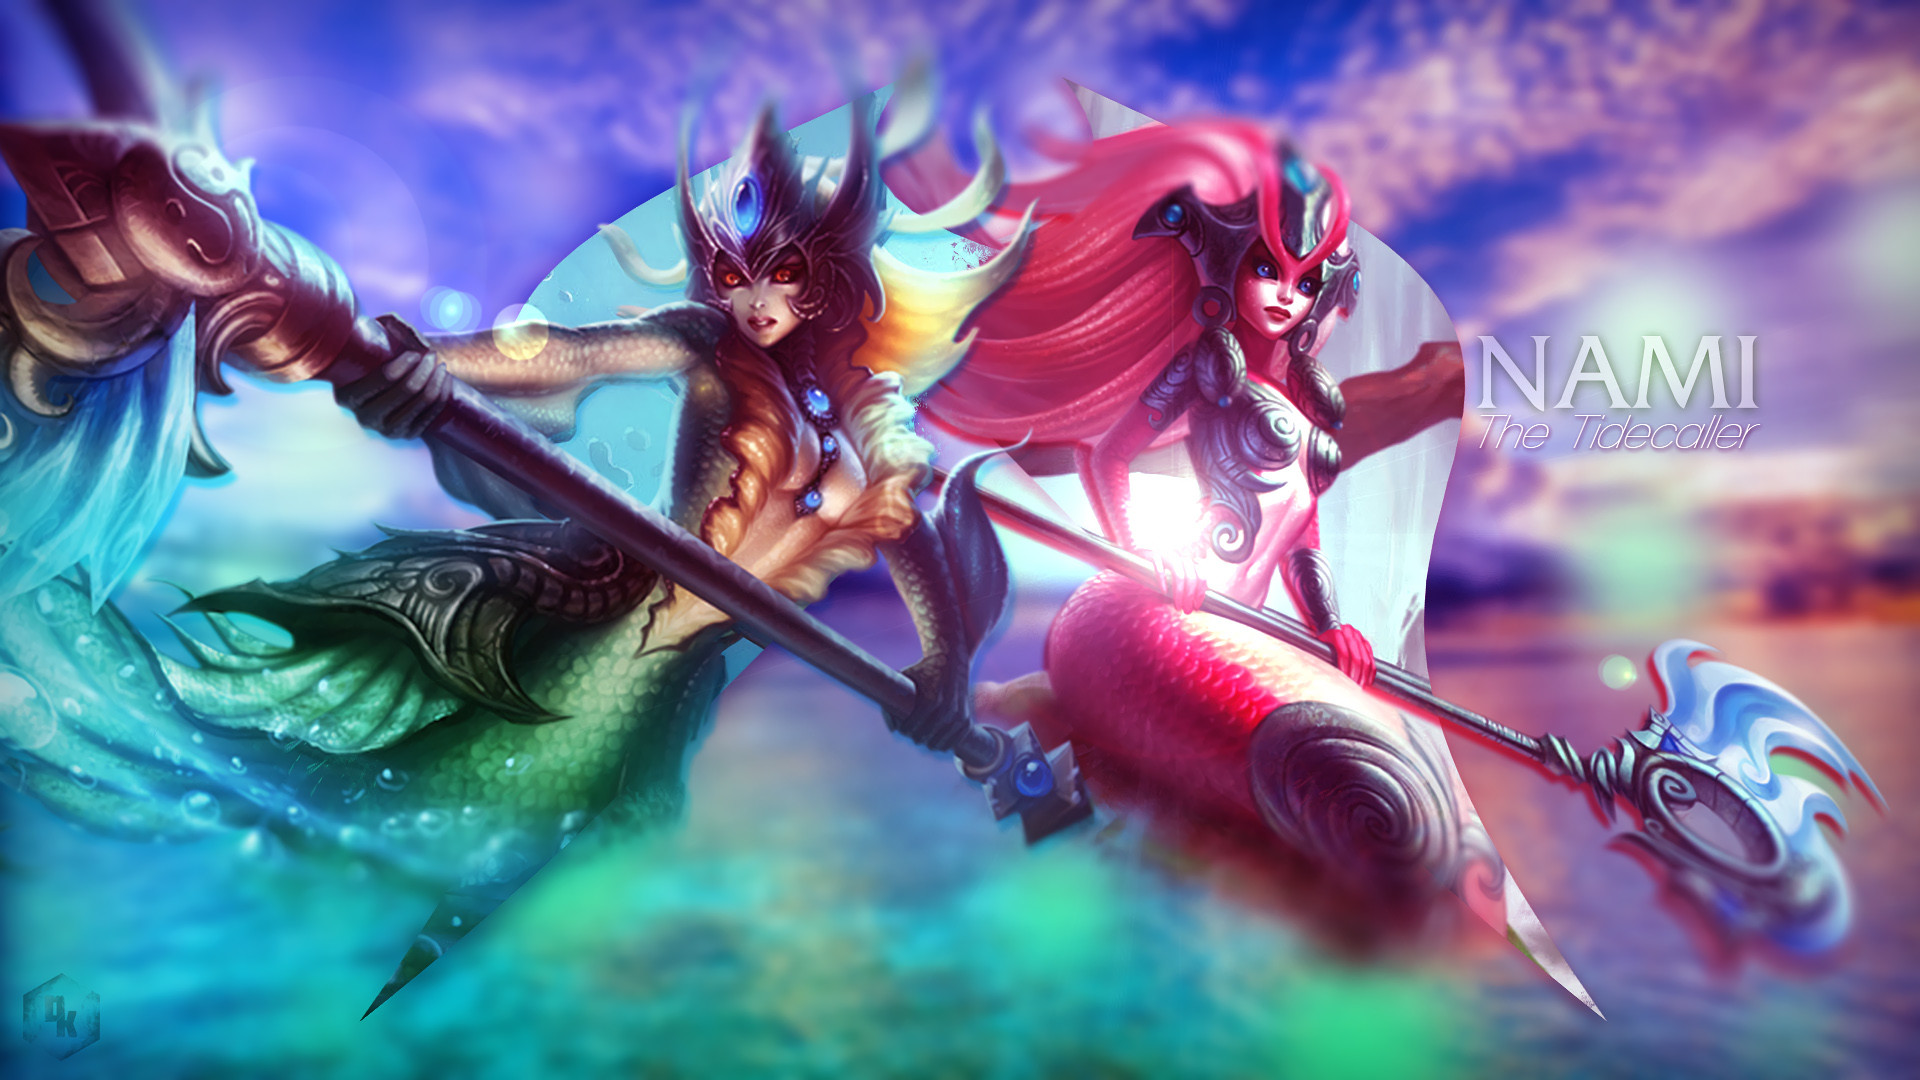 1920x1080 Nami & Koi Nami by WR-Dwyndle HD Wallpaper Fan Artwork League of Legends lol